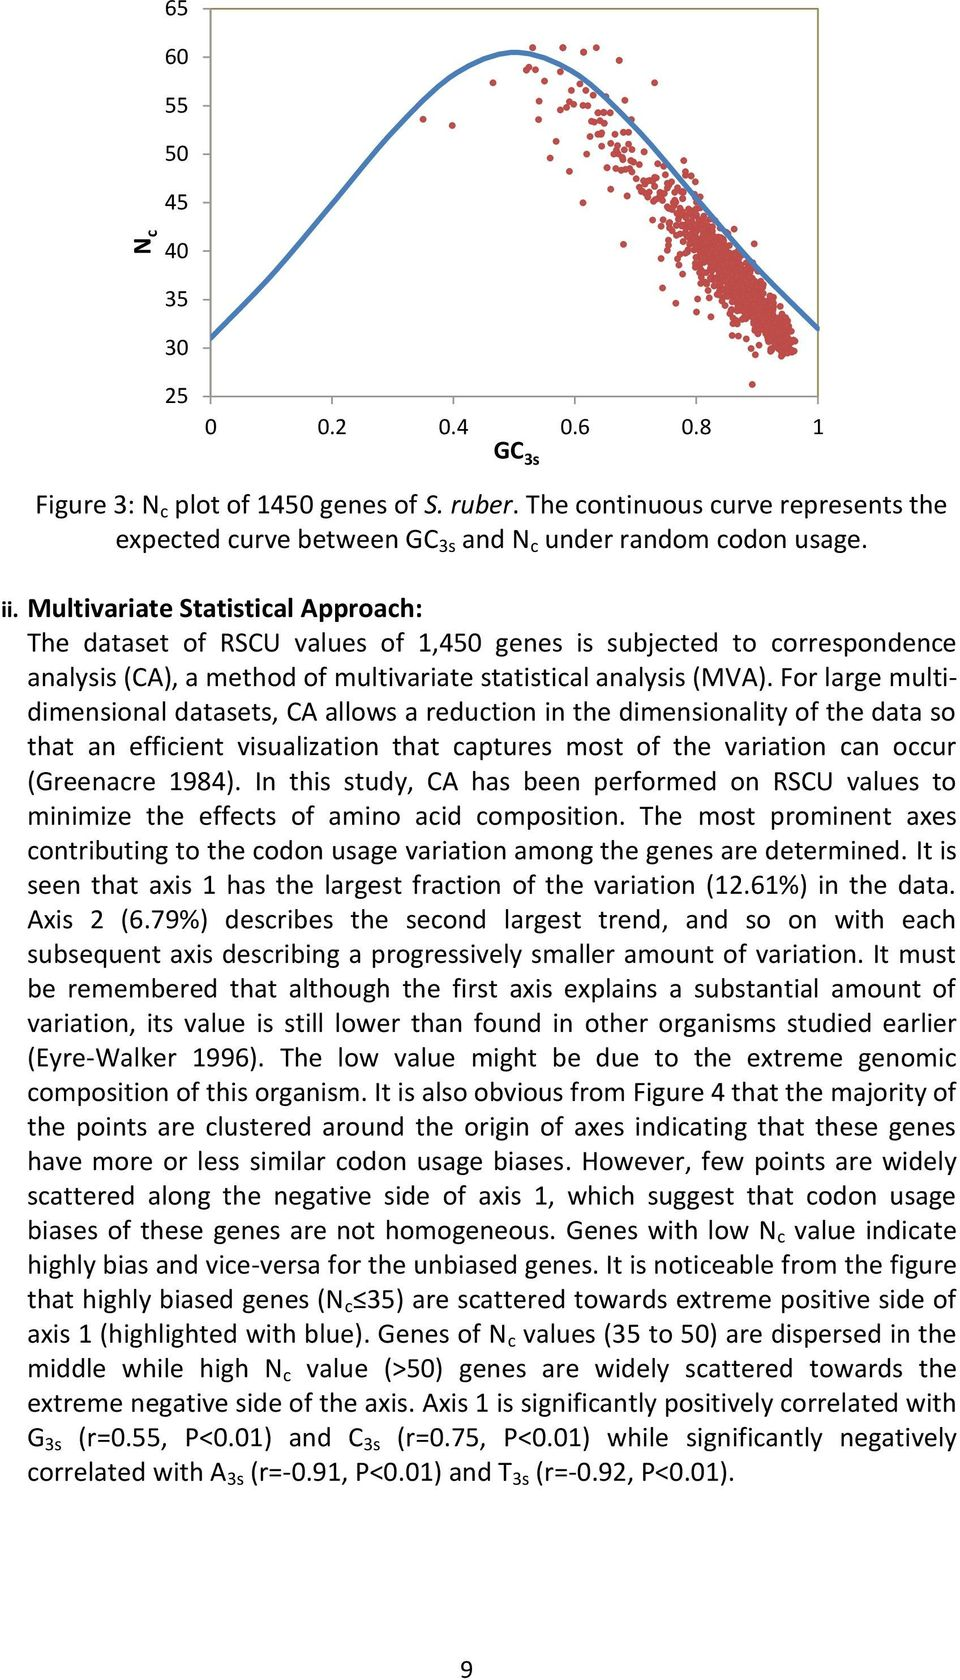 Multivariate Statistical Approach: The dataset of RSCU values of 1,450 genes is subjected to correspondence analysis (CA), a method of multivariate statistical analysis (MVA).